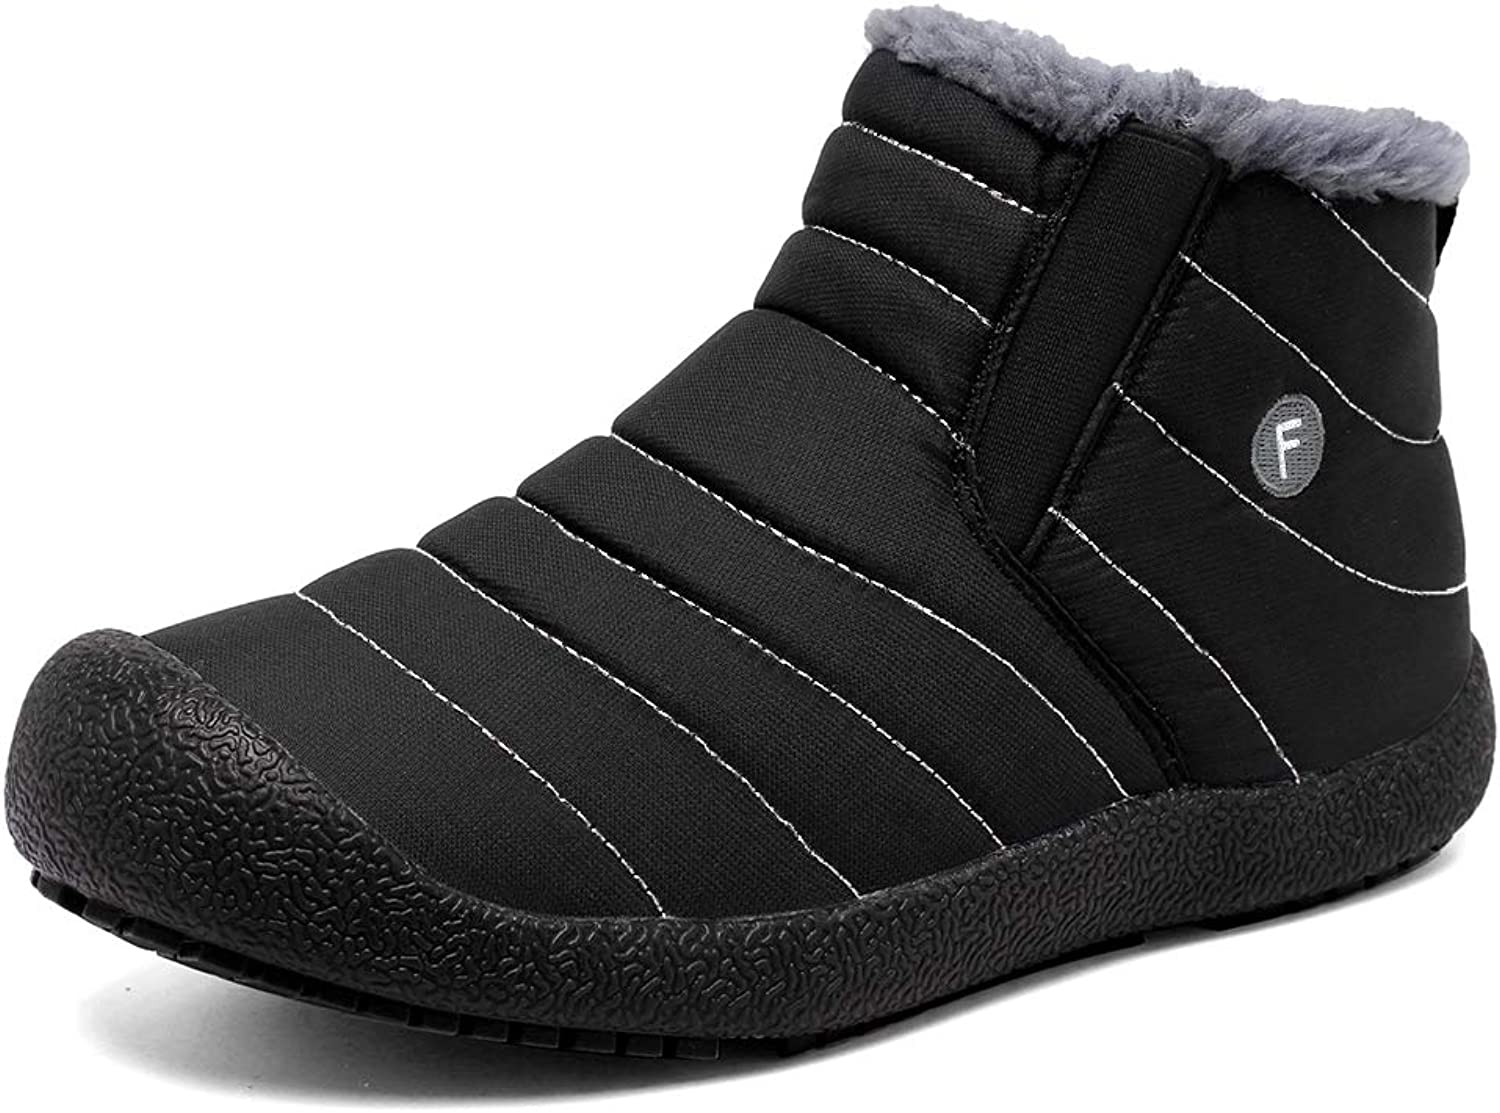 CIOR Mens Anti-Slip Snow Boots with Fully Fur Lined High Top Low Top